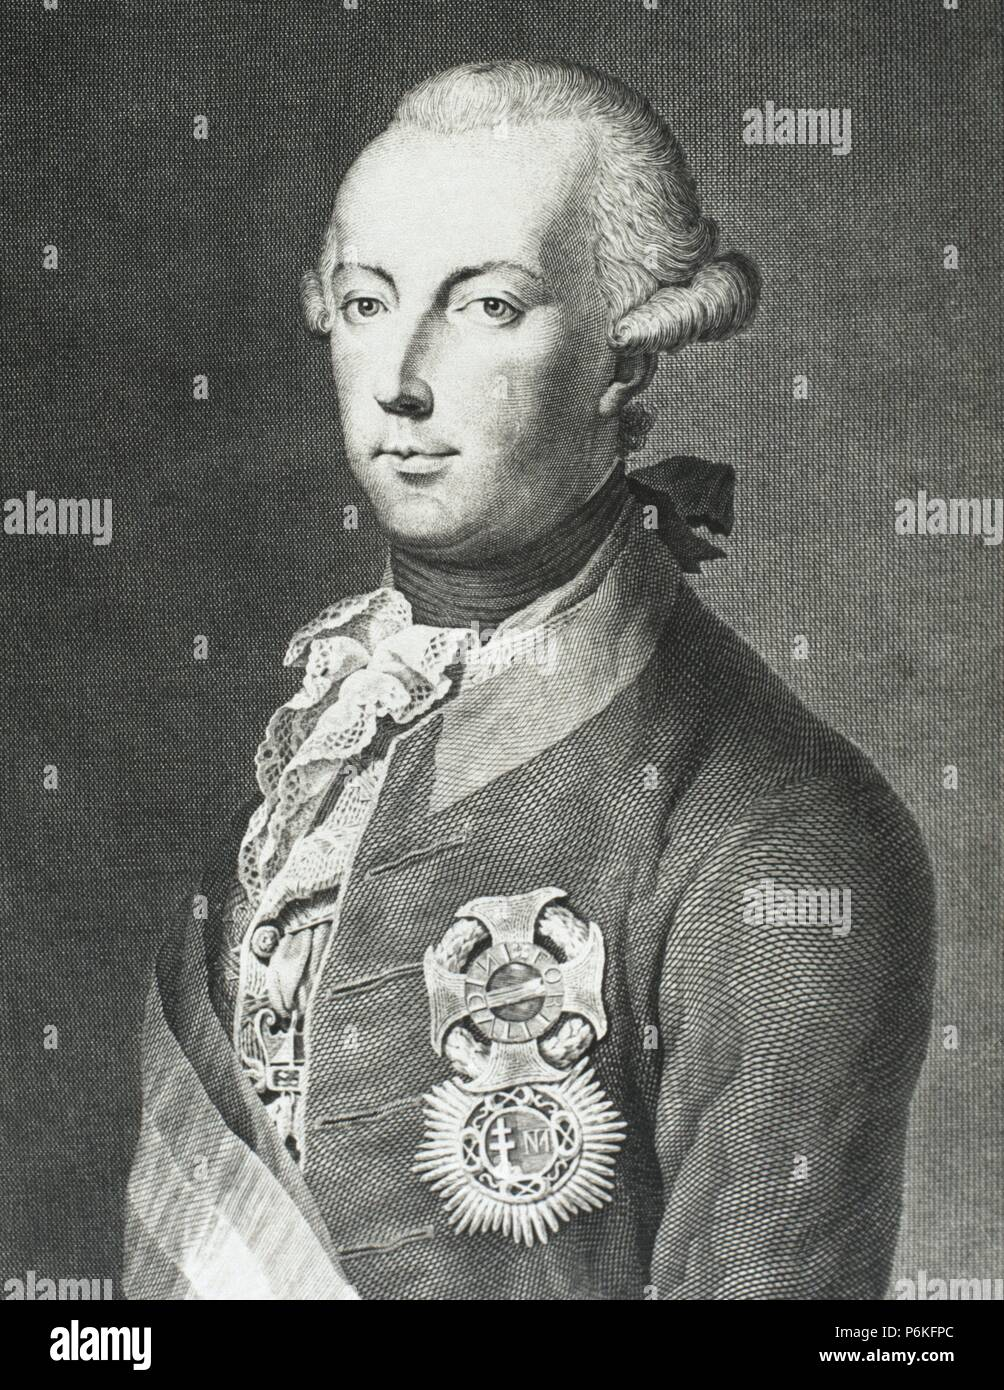 Joseph II (1741-1790). Holy Roman Emperor from 1765-1790. Portrait. Engraving. 19th century. Stock Photo